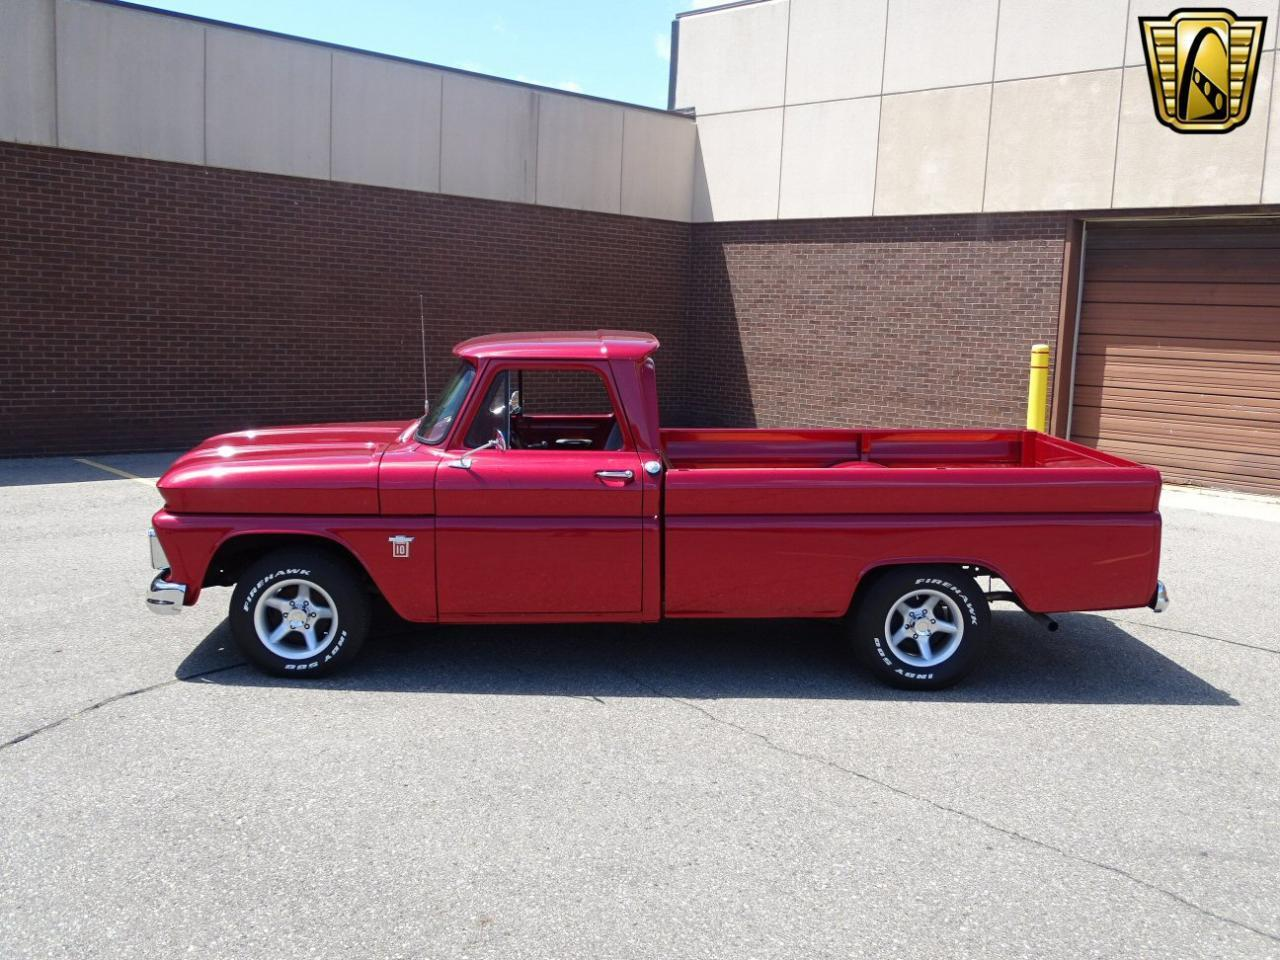 Large Picture of 1964 Chevrolet C10 located in Dearborn Michigan - $18,595.00 Offered by Gateway Classic Cars - Detroit - LUZ8